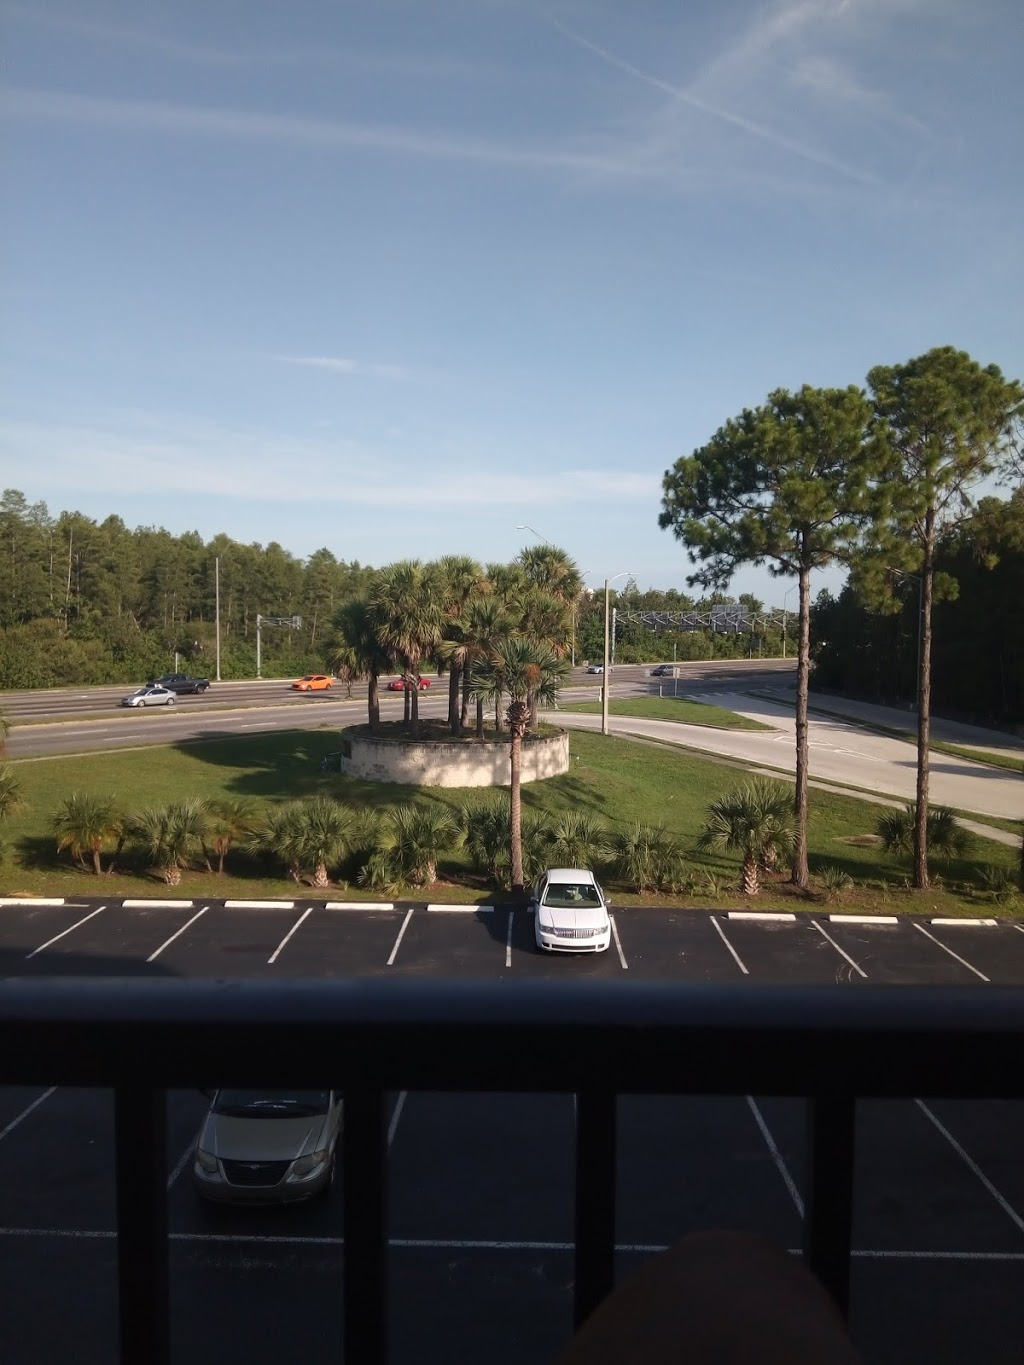 APM Inn & Suites - lodging  | Photo 10 of 10 | Address: 3155 S John Young Pkwy, Orlando, FL 32805, USA | Phone: (407) 704-3573